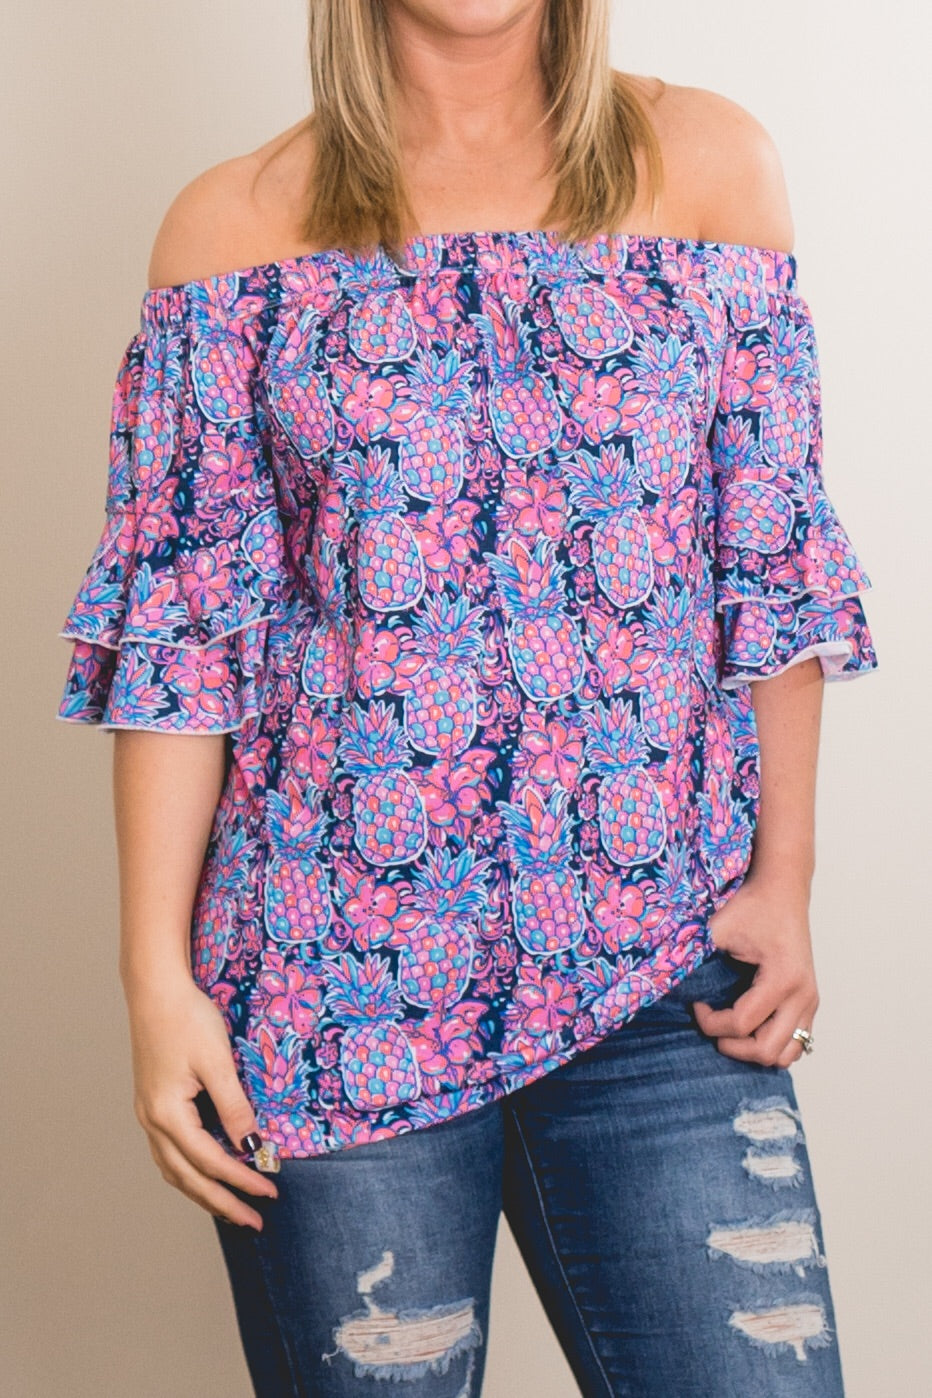 Simply Southern Pineapple Off The Shoulder Top